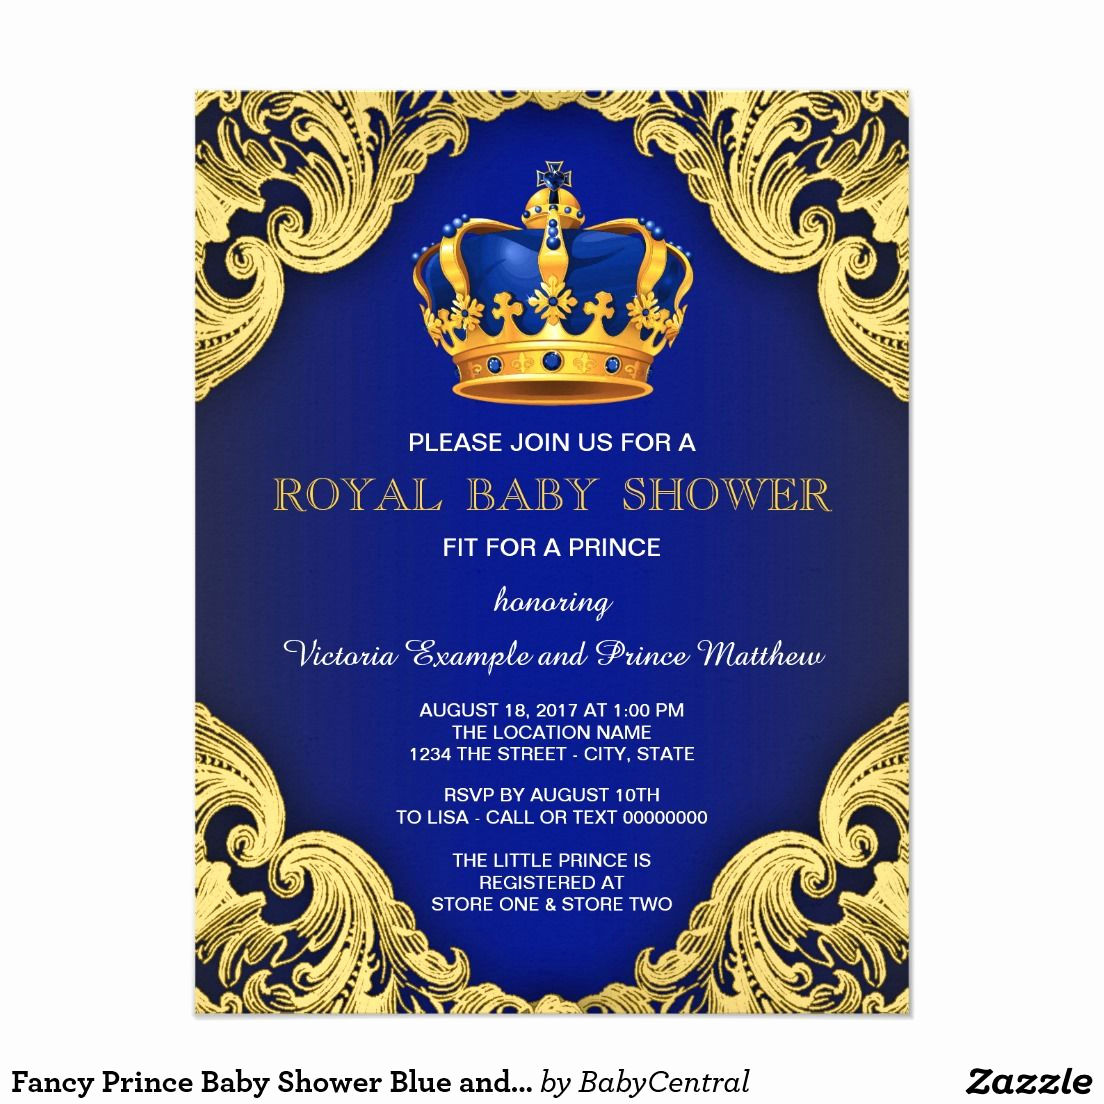 Blue and Gold Invitation Template Best Of Fancy Prince Baby Shower Blue and Gold Invitation